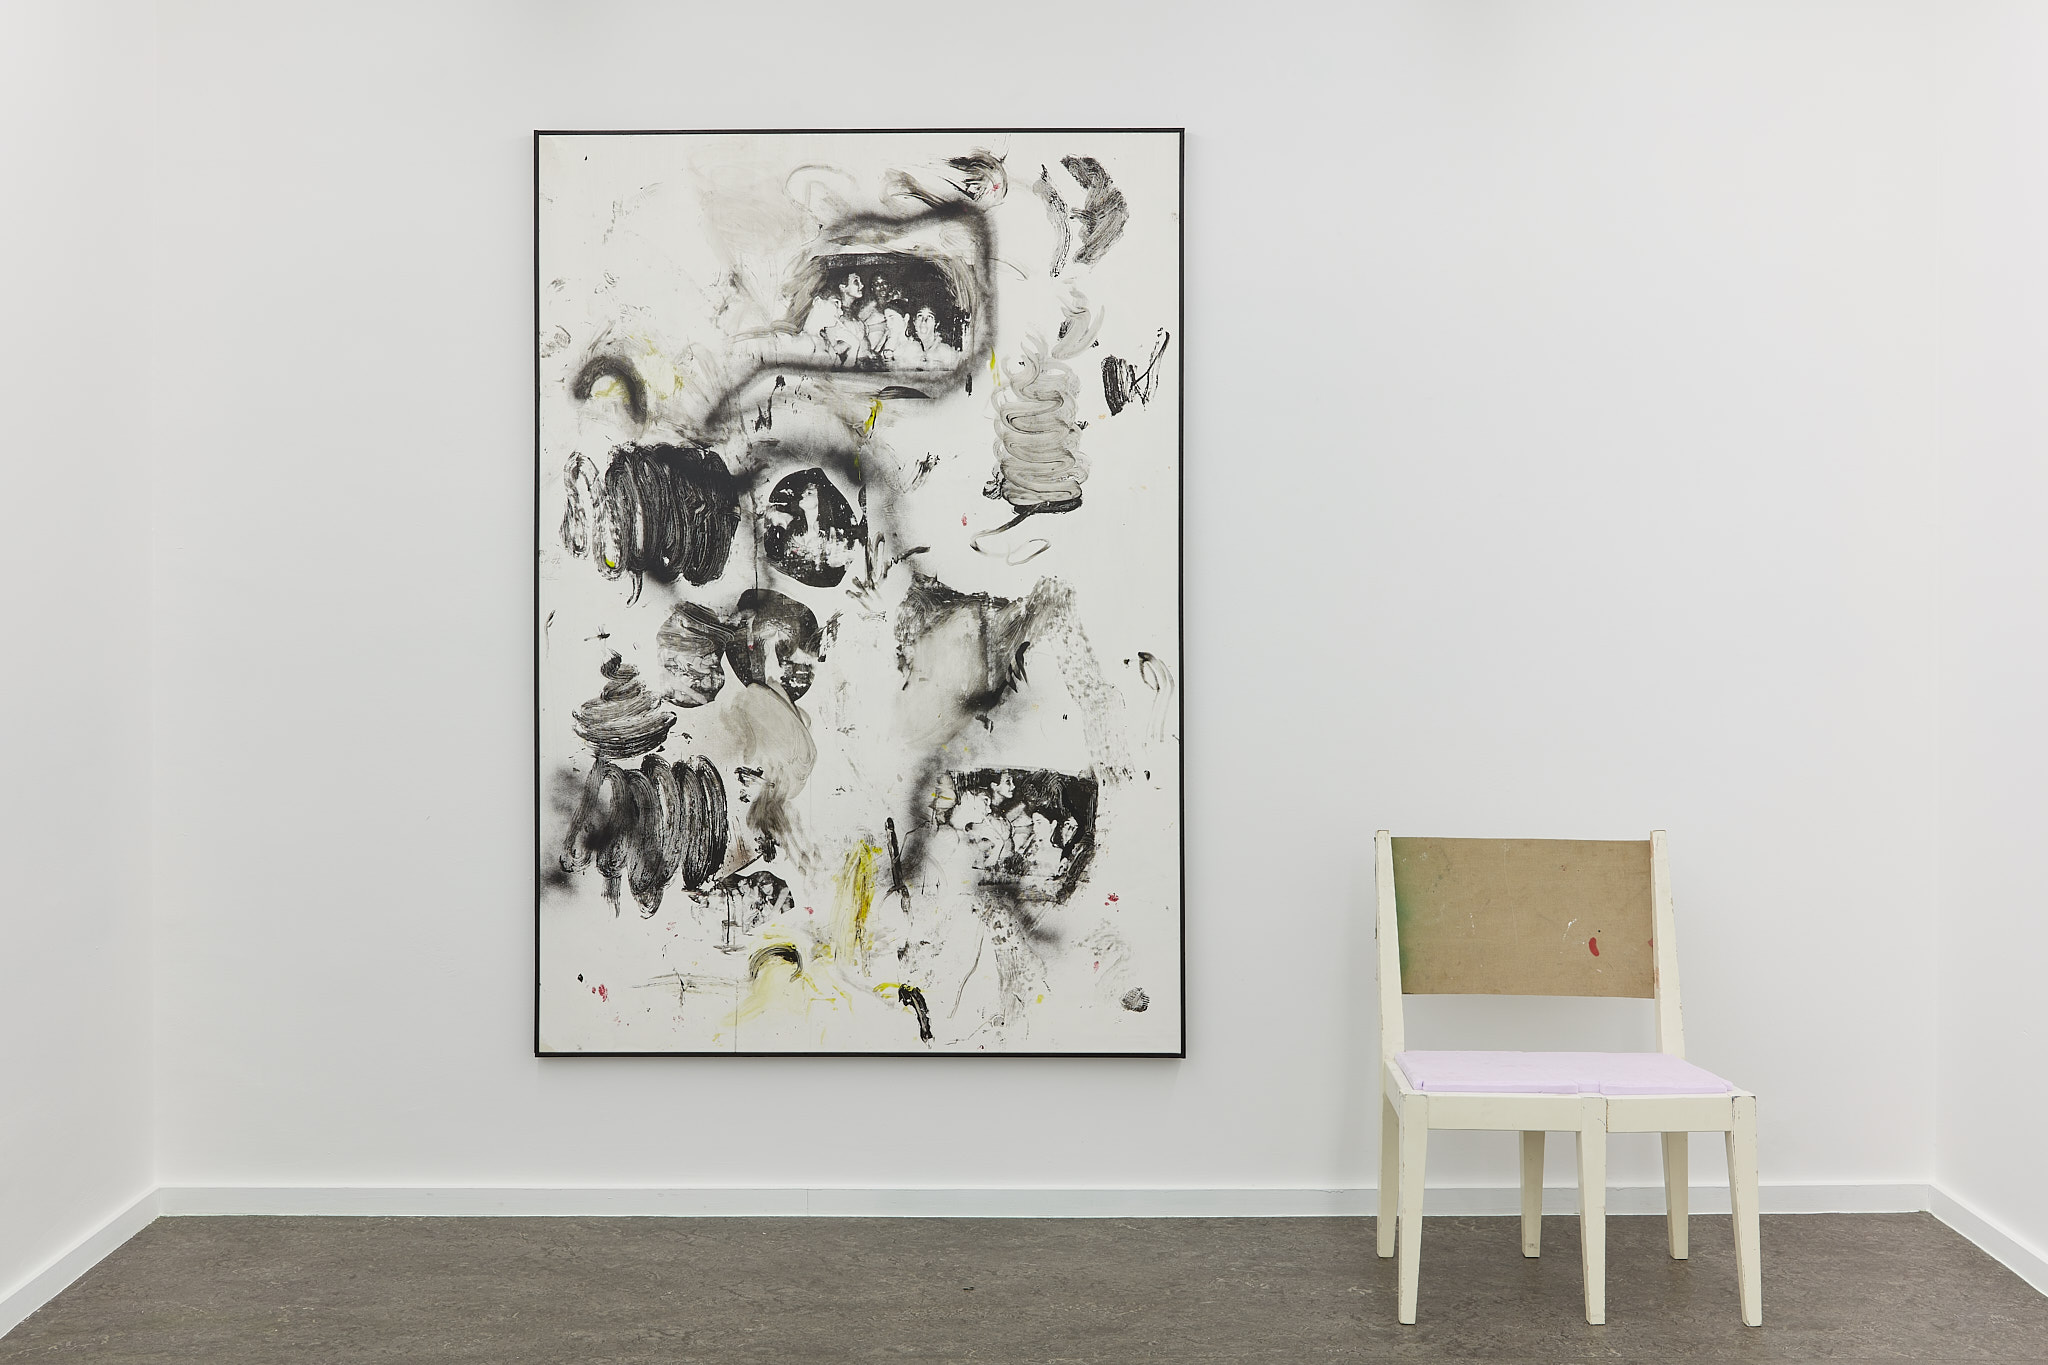 Leo Gabin. Sit with it. Installation View at TICK TACK, 2021